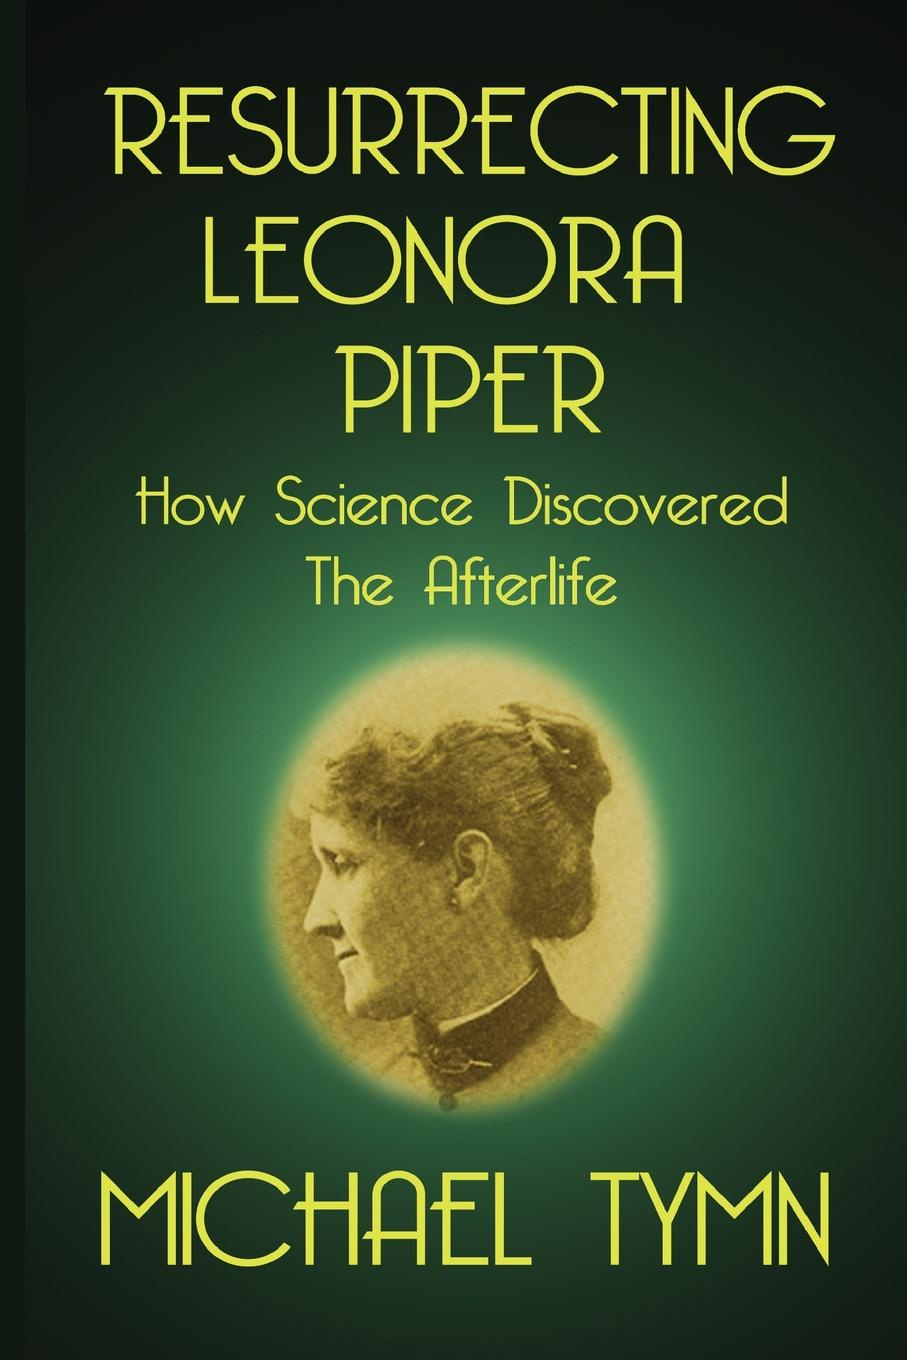 Michael Tymn Resurrecting Leonora Piper. How Science Discovered the Afterlife michael p wright world crusade in the 21st century a book inspired by god